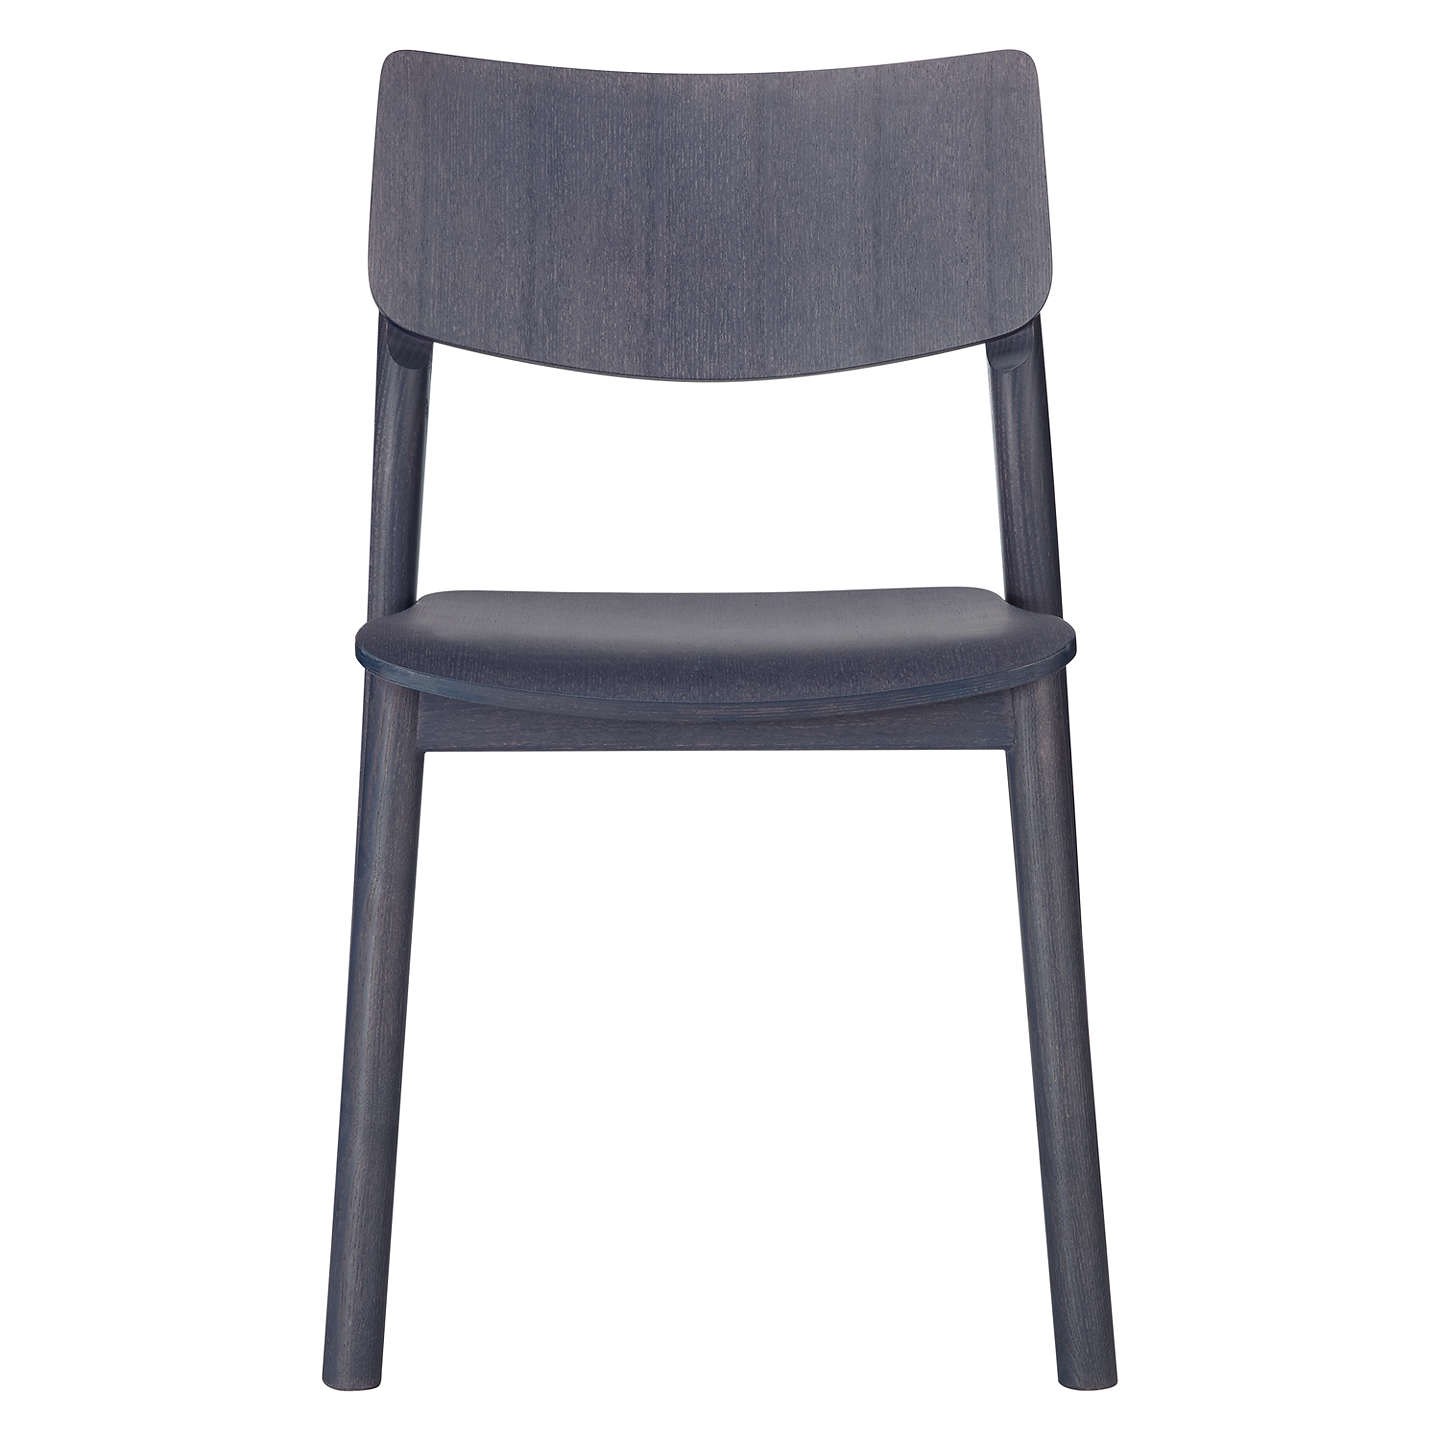 Design project by john lewis dining chair at john lewis for John lewis design service